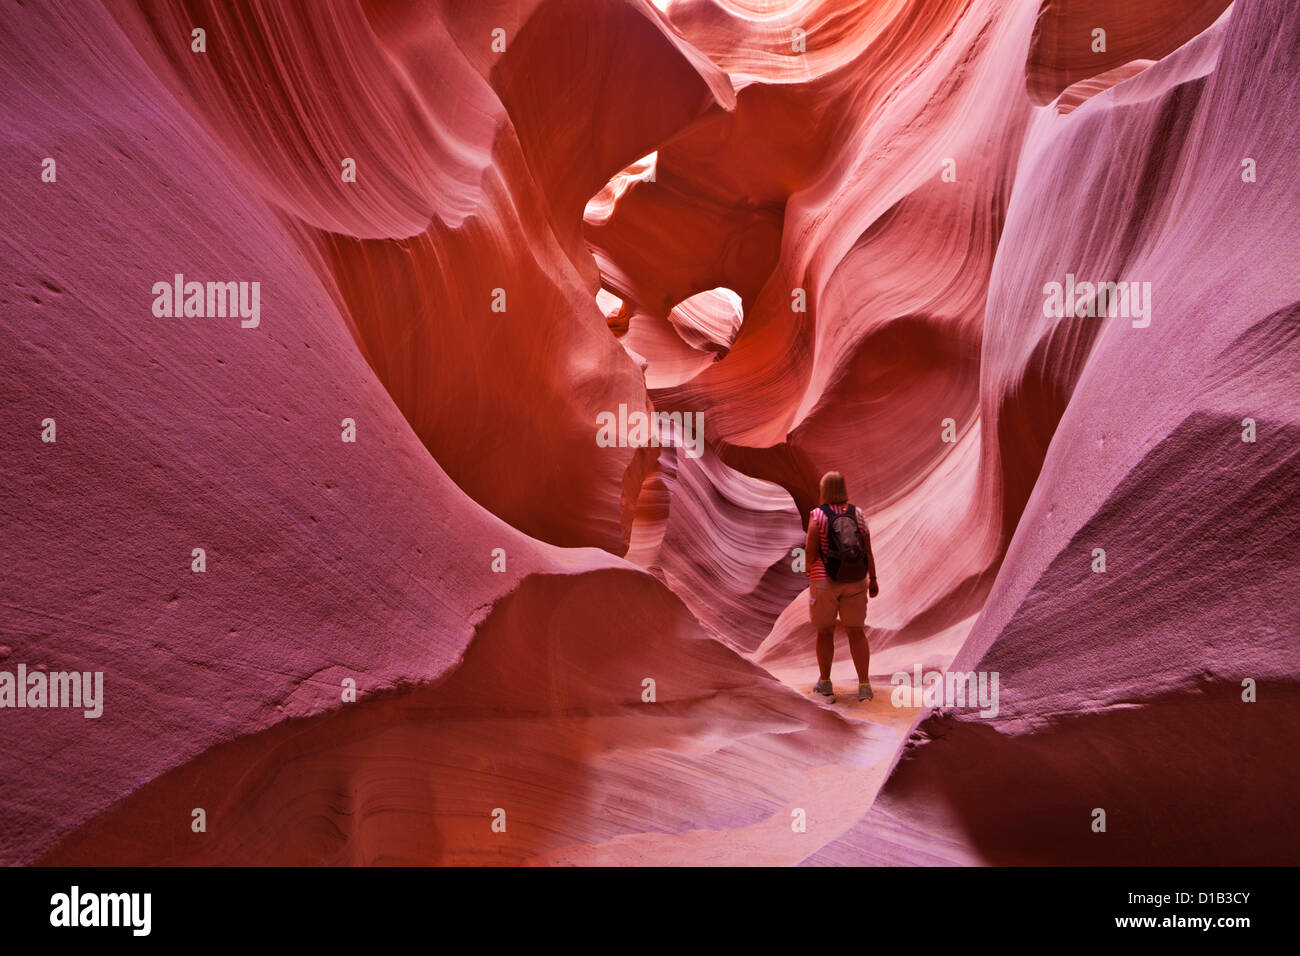 Female Tourist Hiker and Sandstone Rock Formations, Lower Antelope Canyon, Page, Arizona, USA United states of America - Stock Image